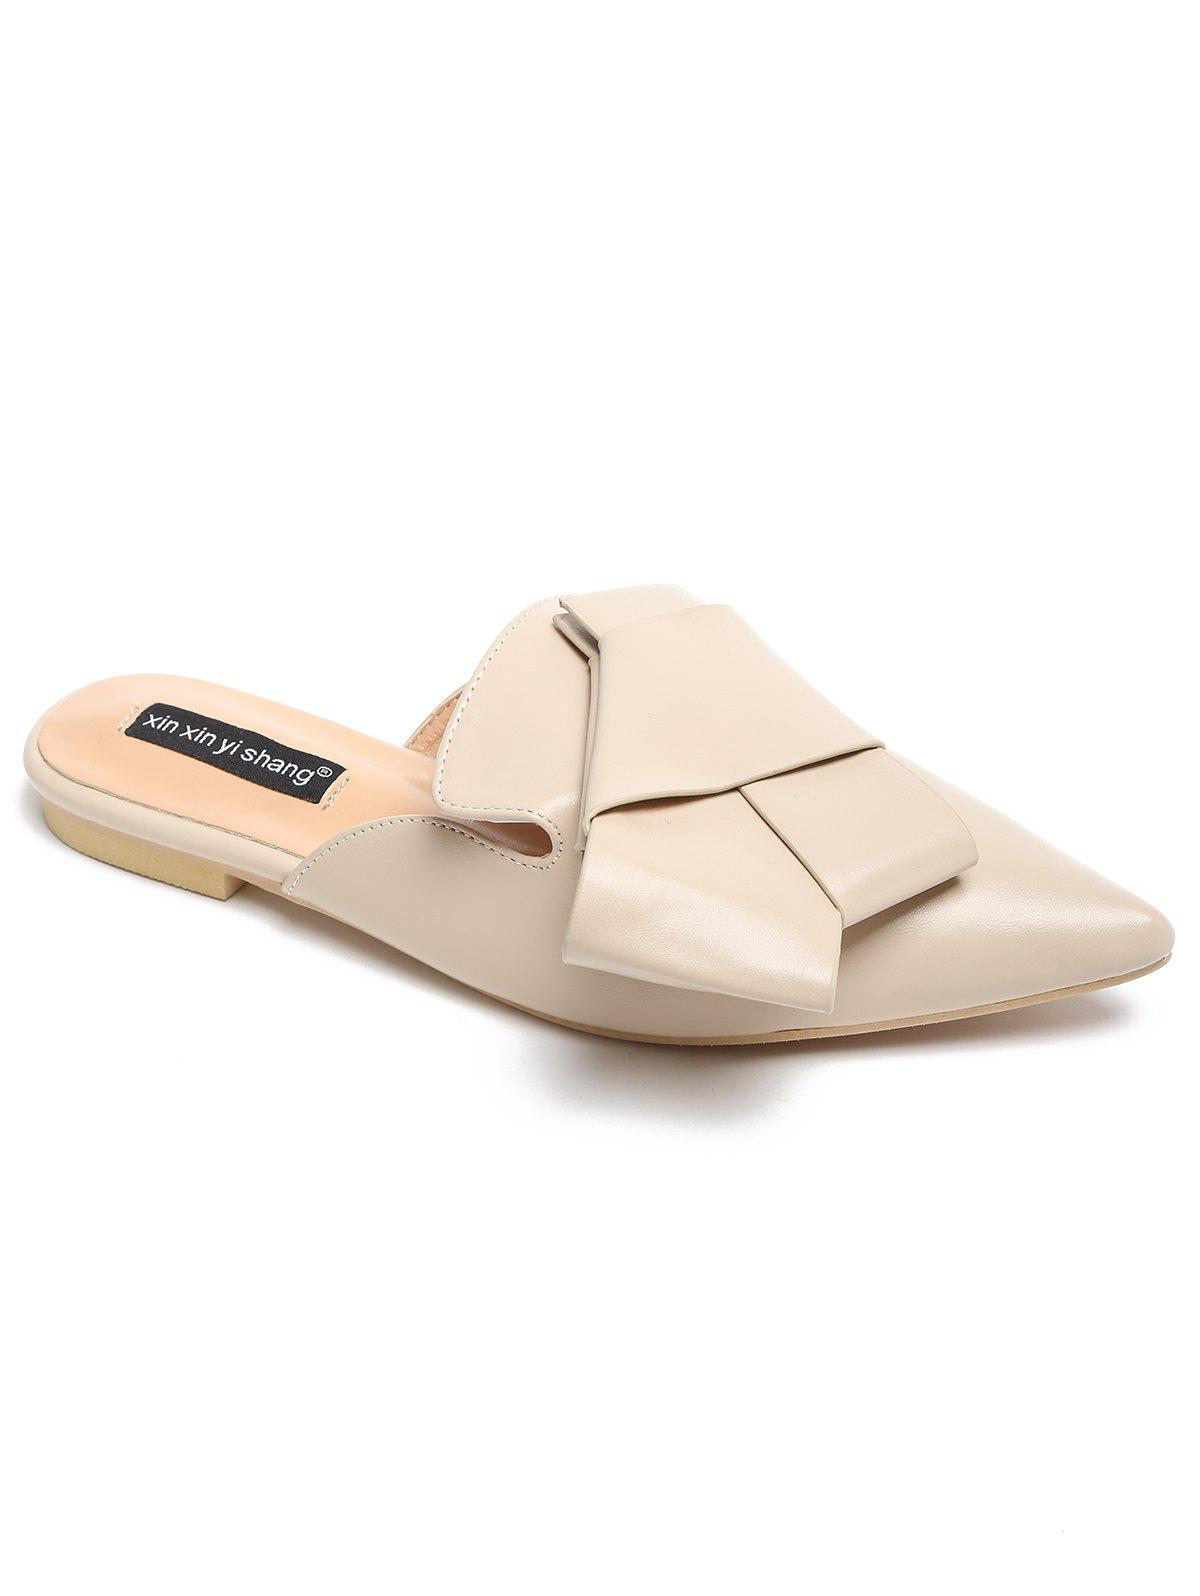 Faux Leather Slip On Casual Mules Shoes - APRICOT 40